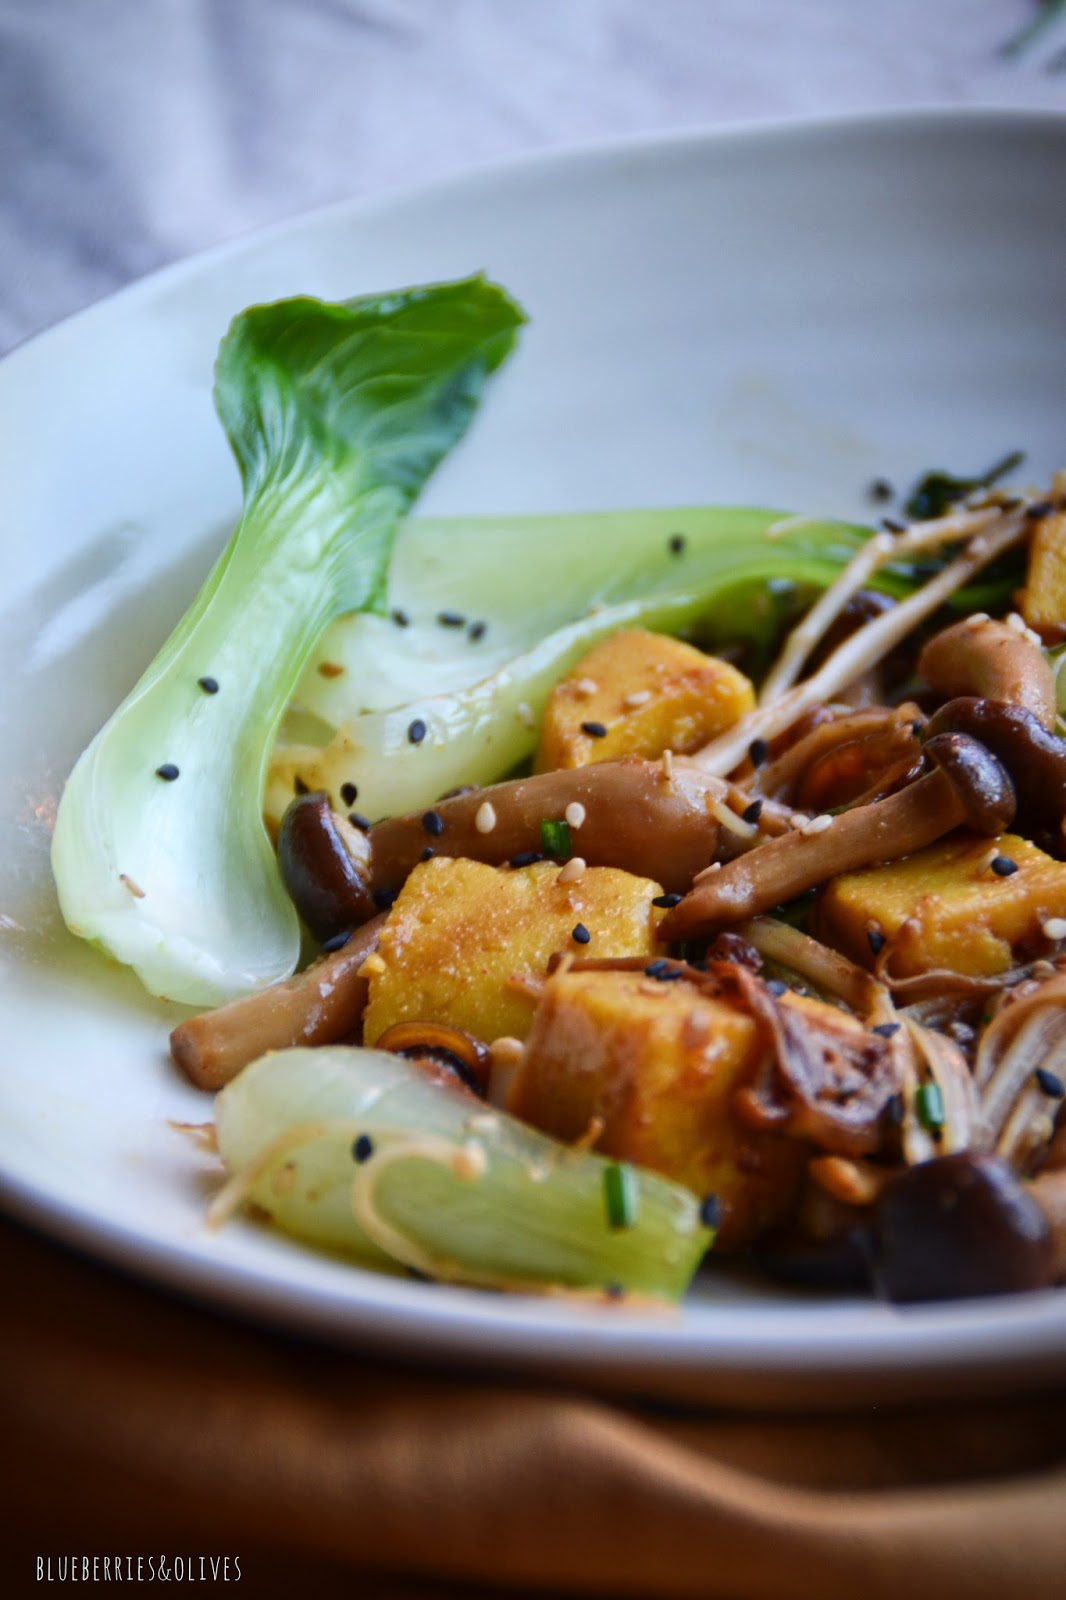 STIR-FRIED MUSHROOMS, BOK CHOY AND CHICKPEA TOFU